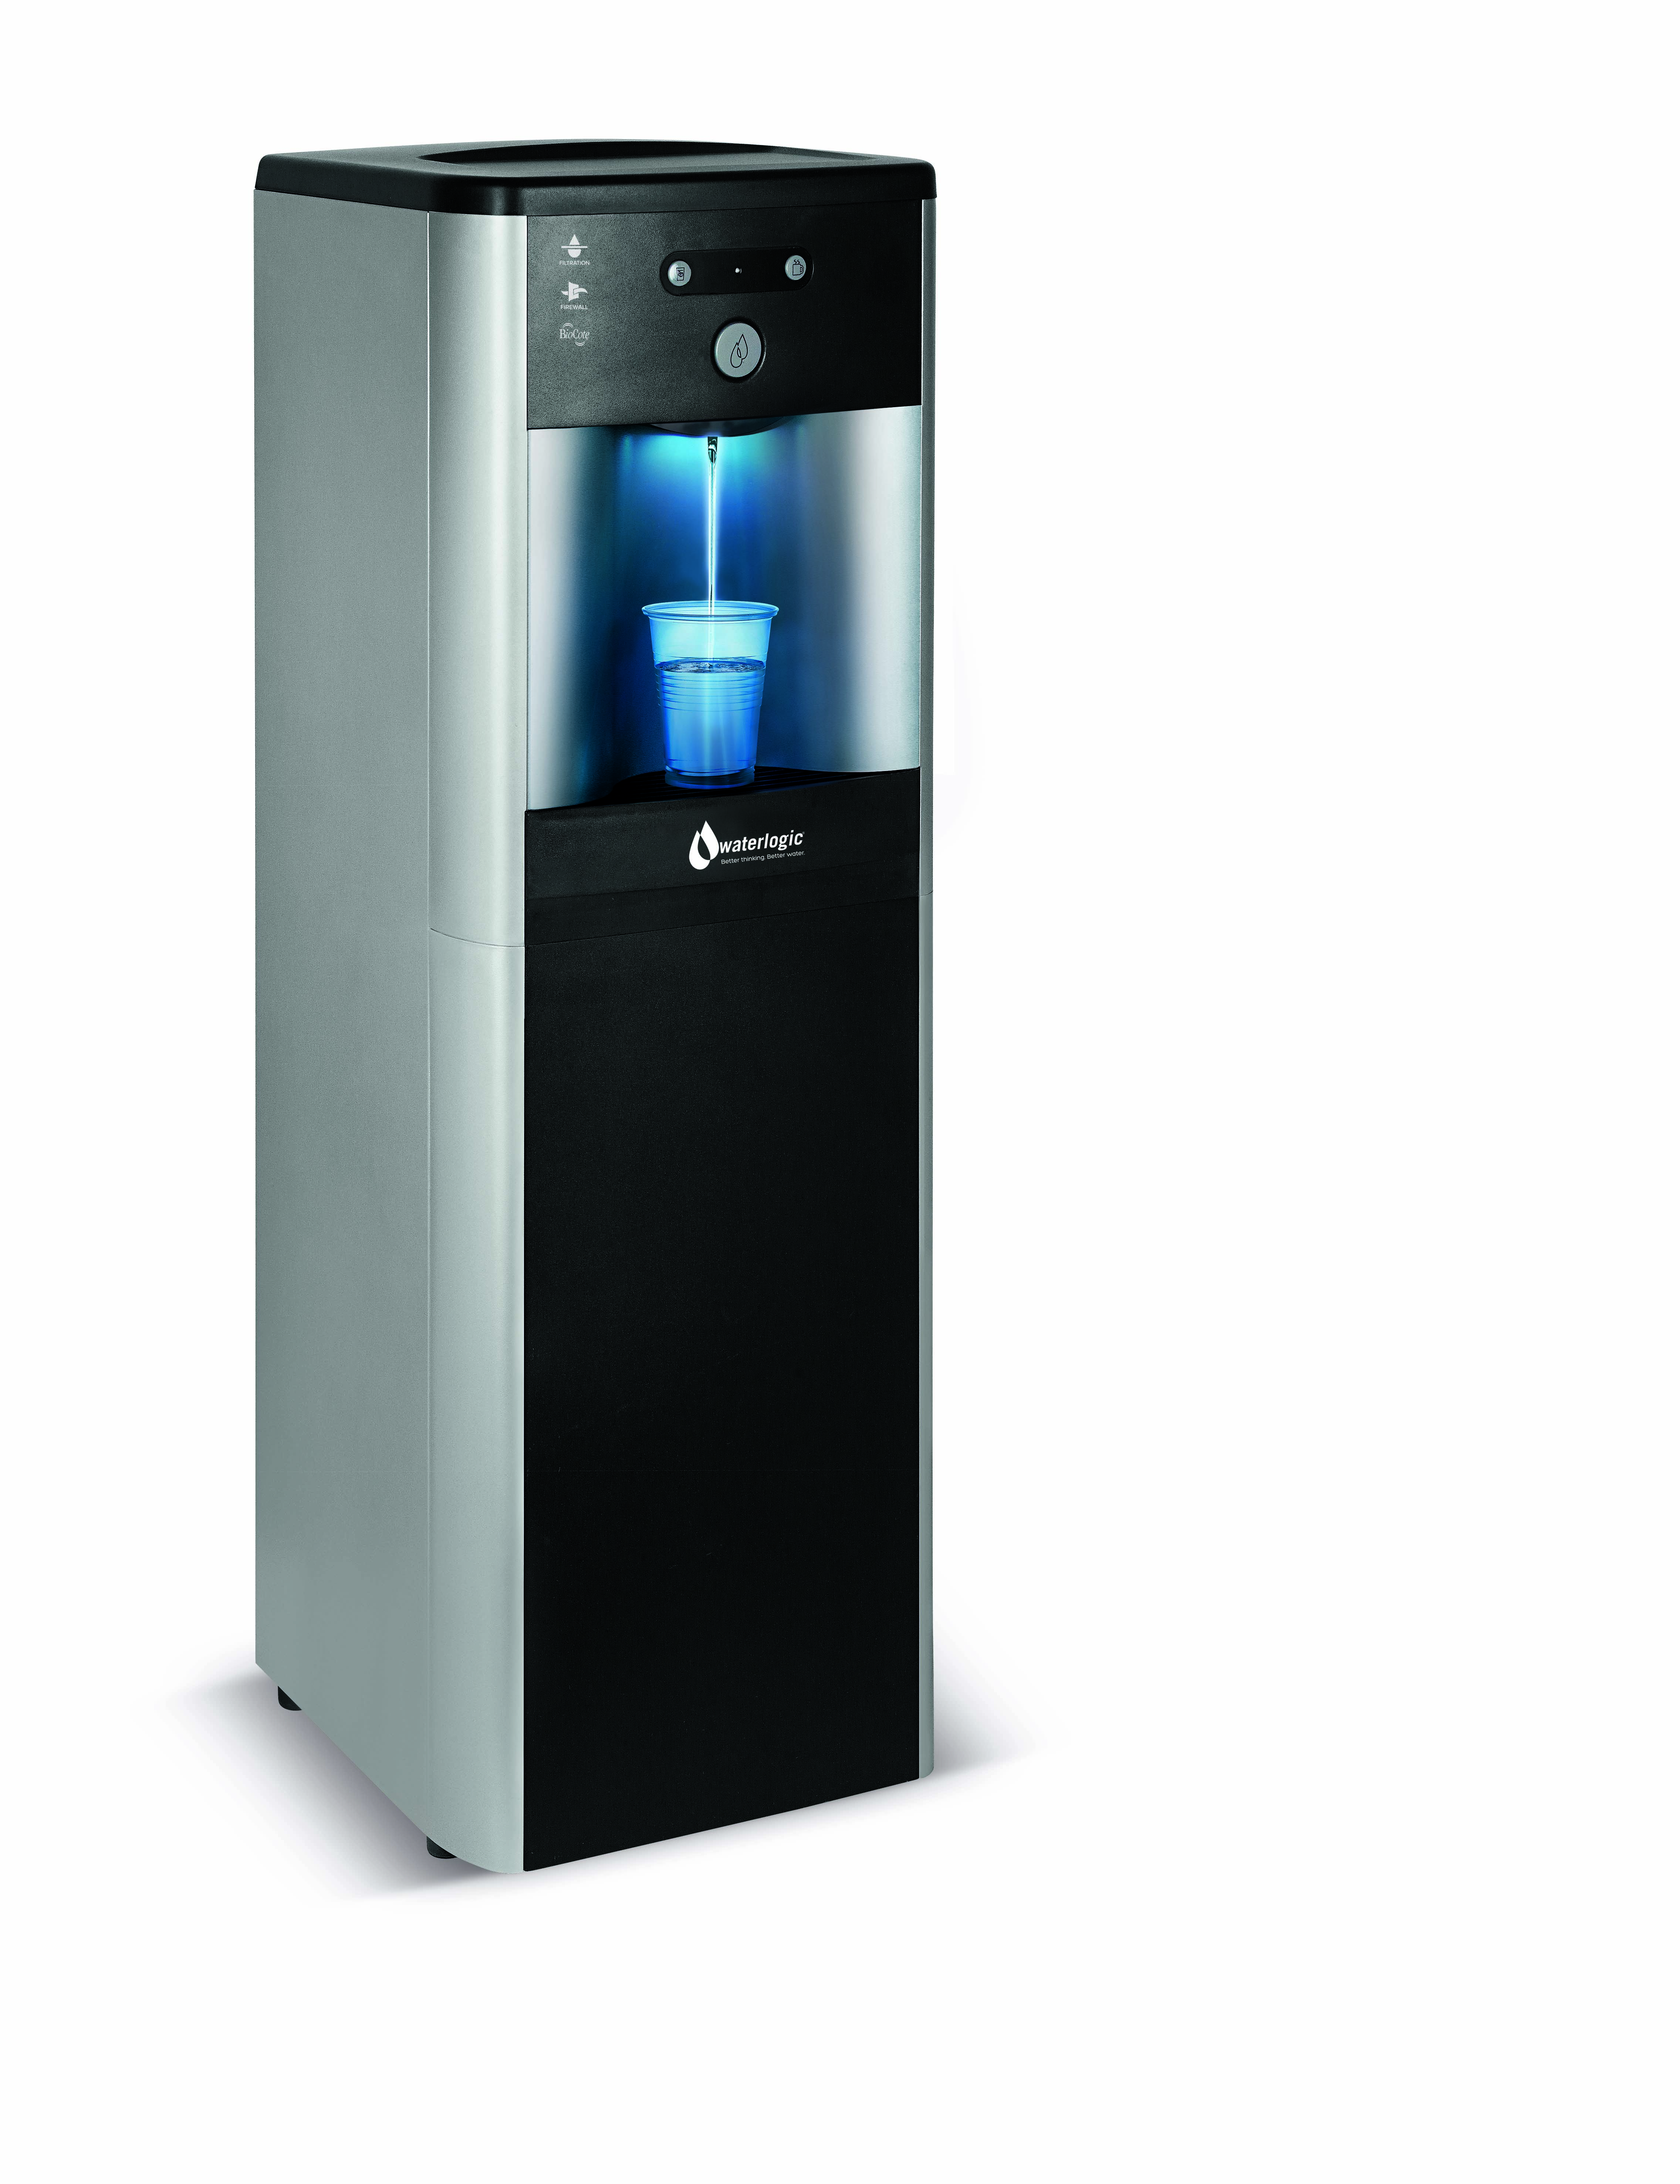 Image Result For Water Filter For Ice Machine